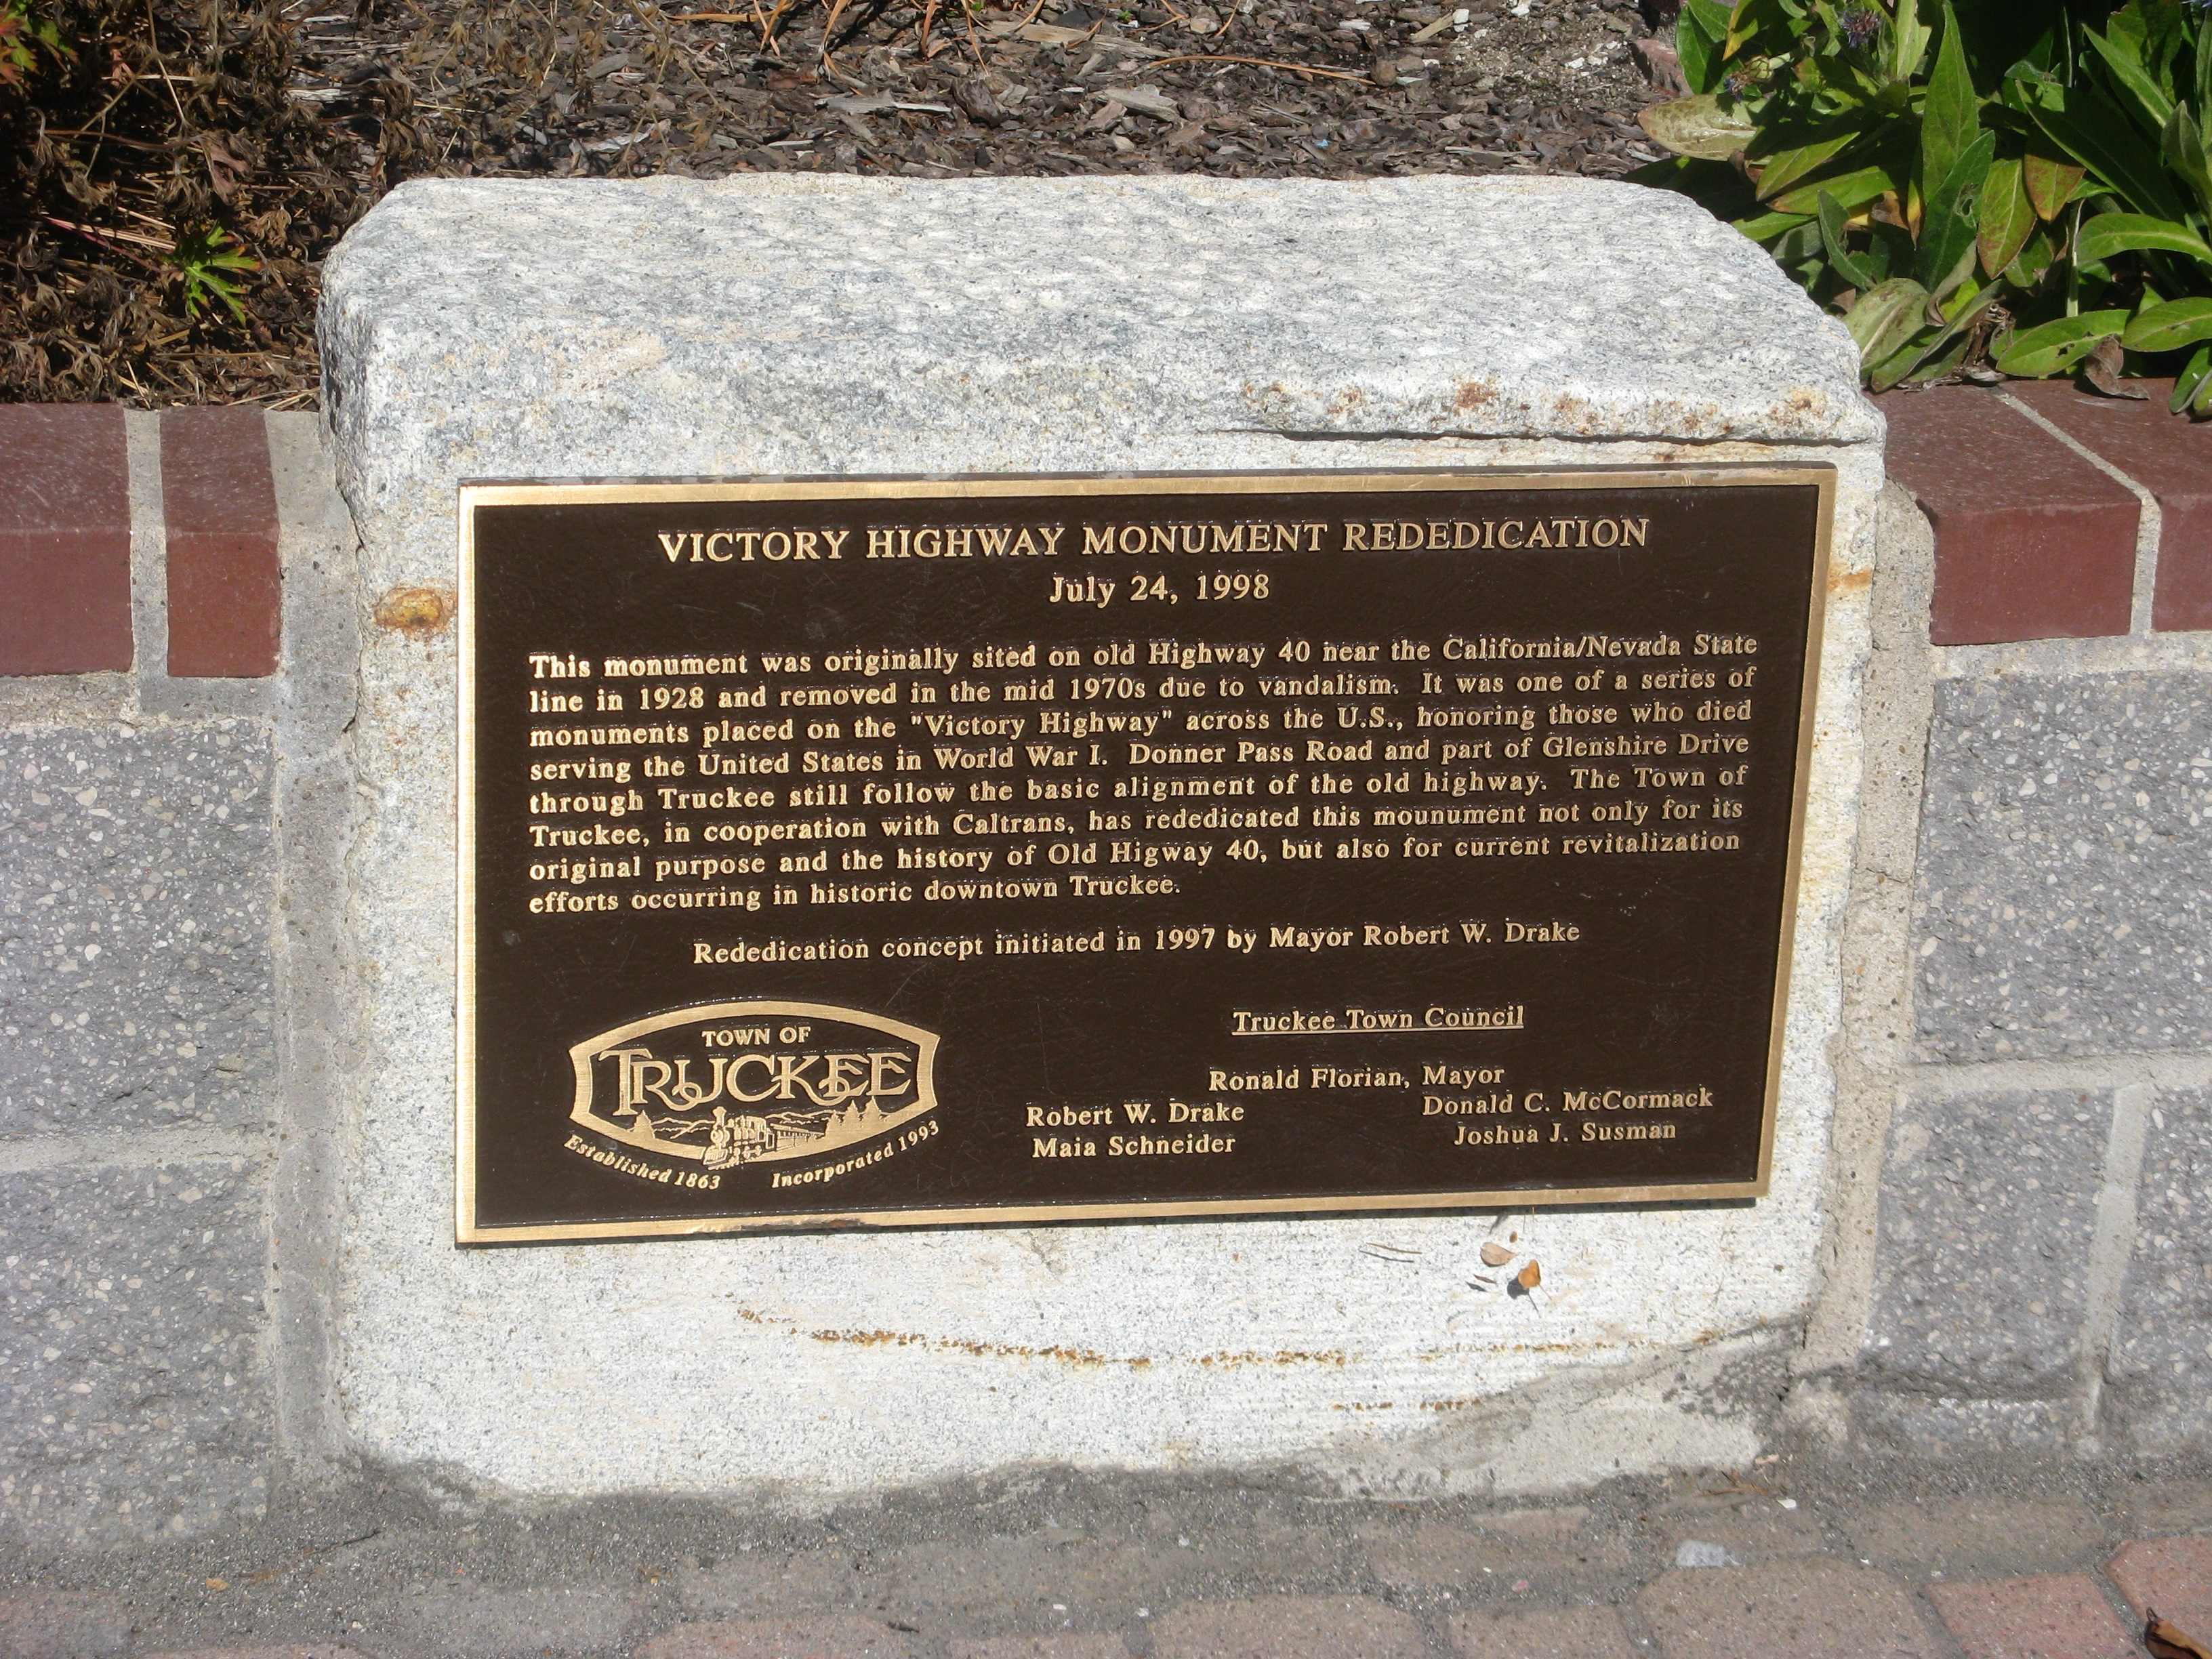 Victory Highway Monument Rededication Marker